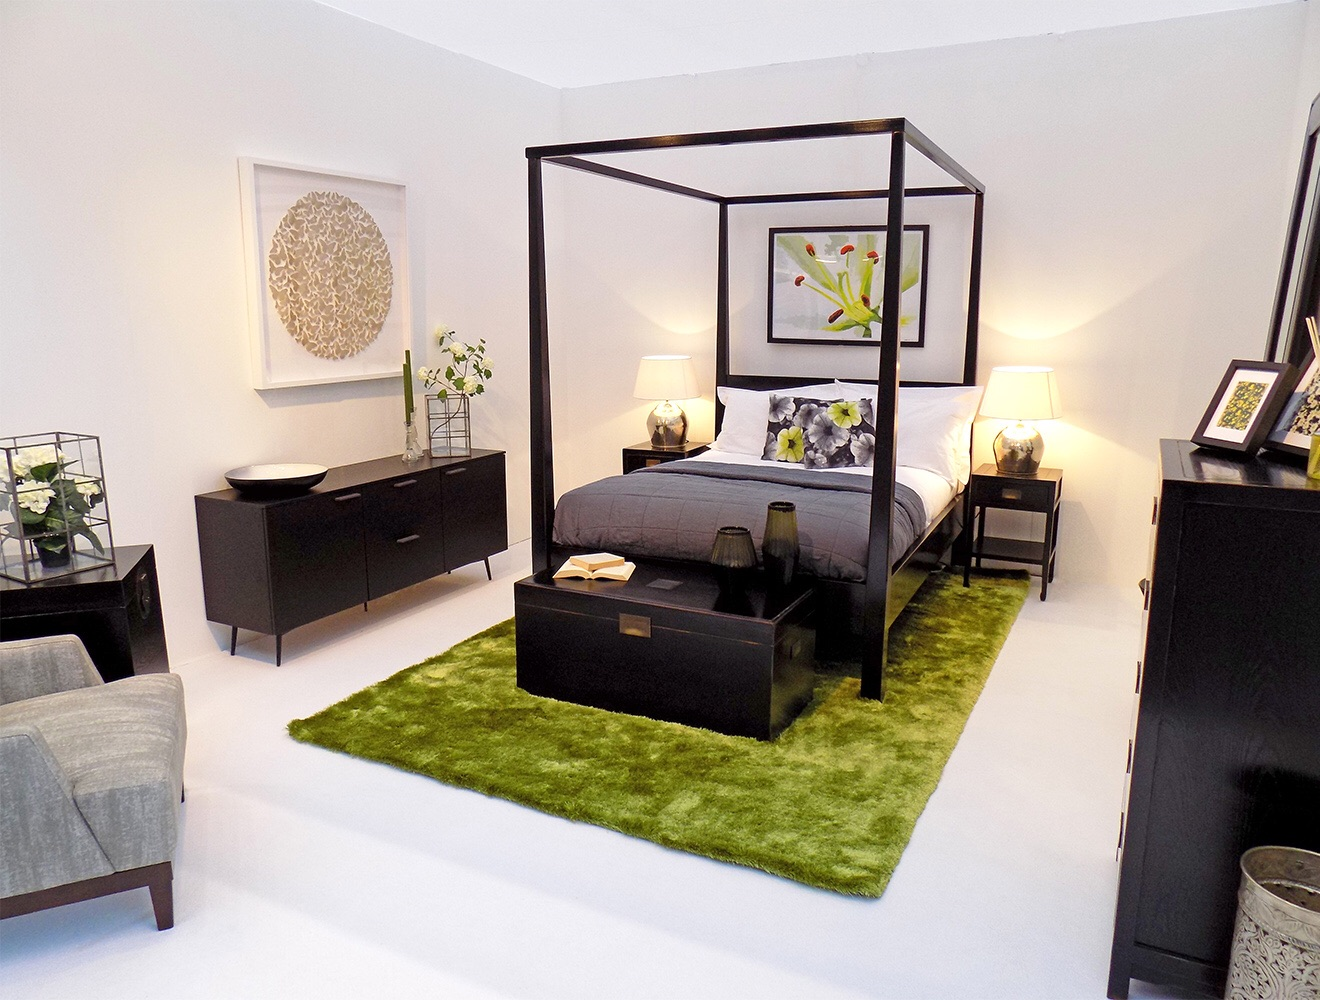 Purity of Nature inspired bedroom by Martyn White Designs